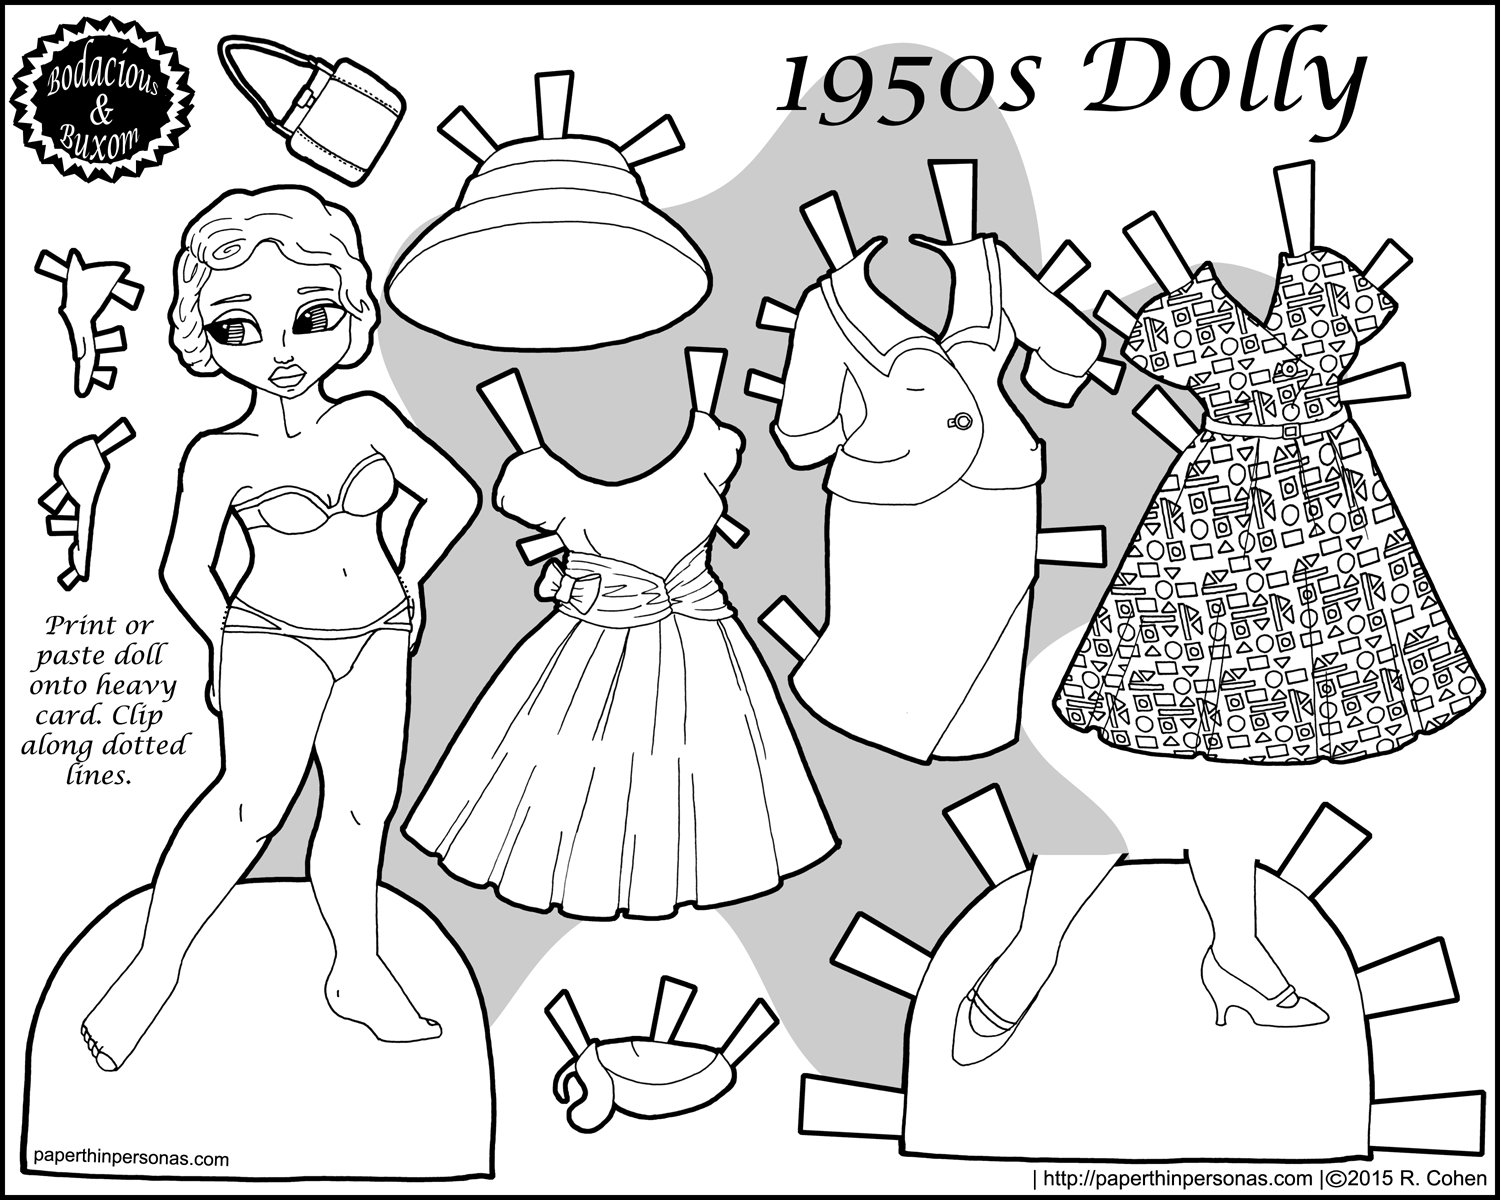 dress up dolls printable full color paper thin personas printable up dolls dress